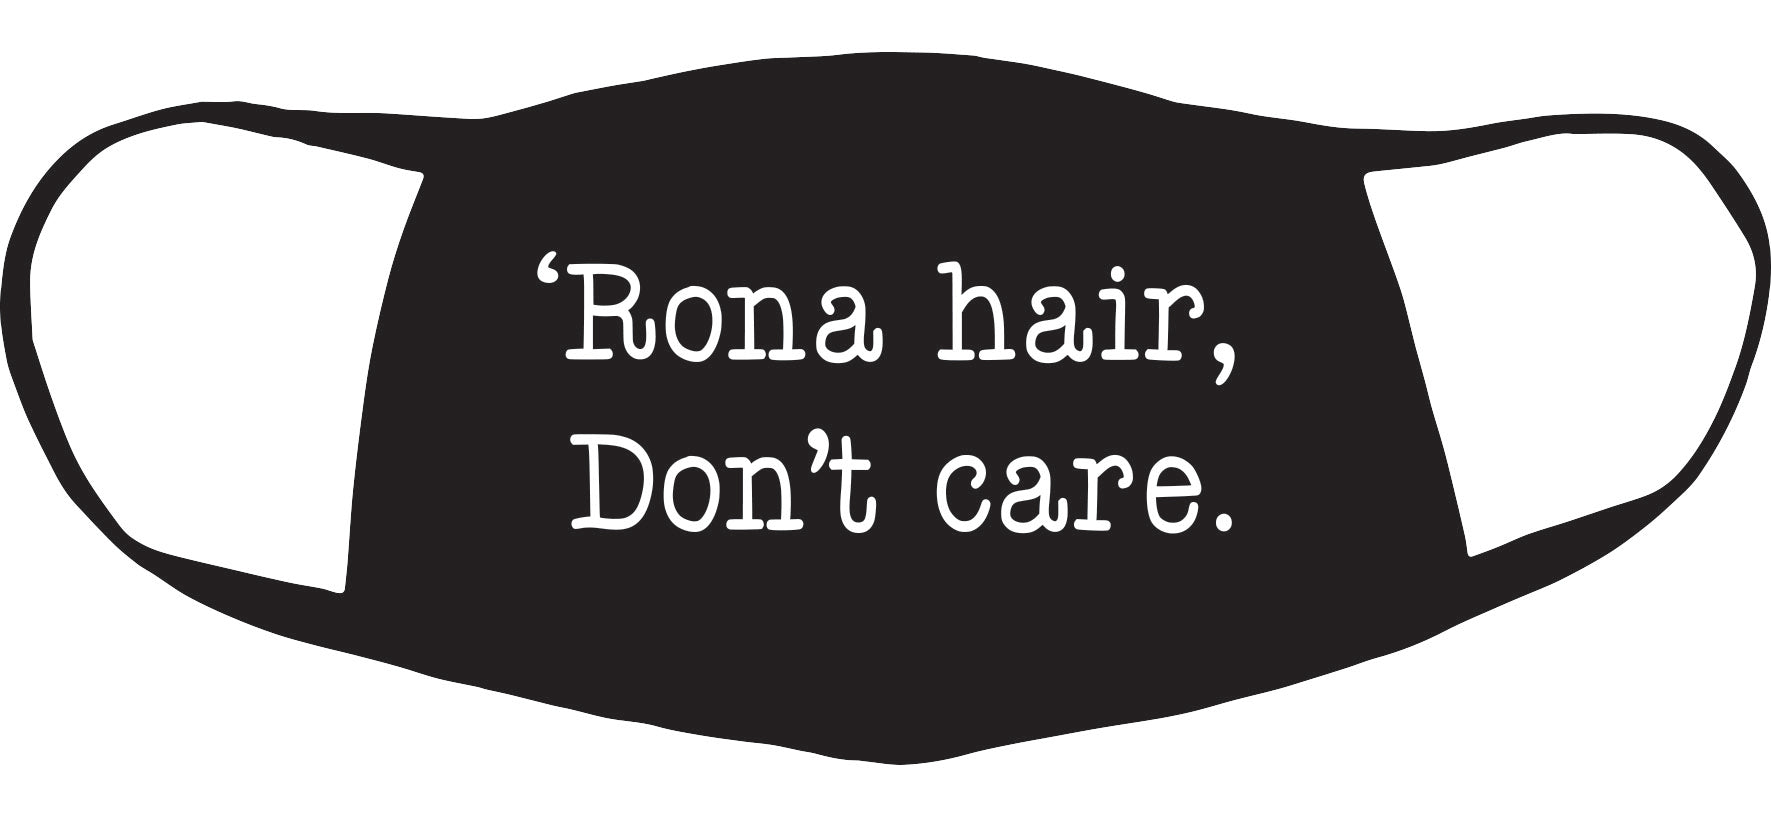 'rona hair don't care two-ply face mask